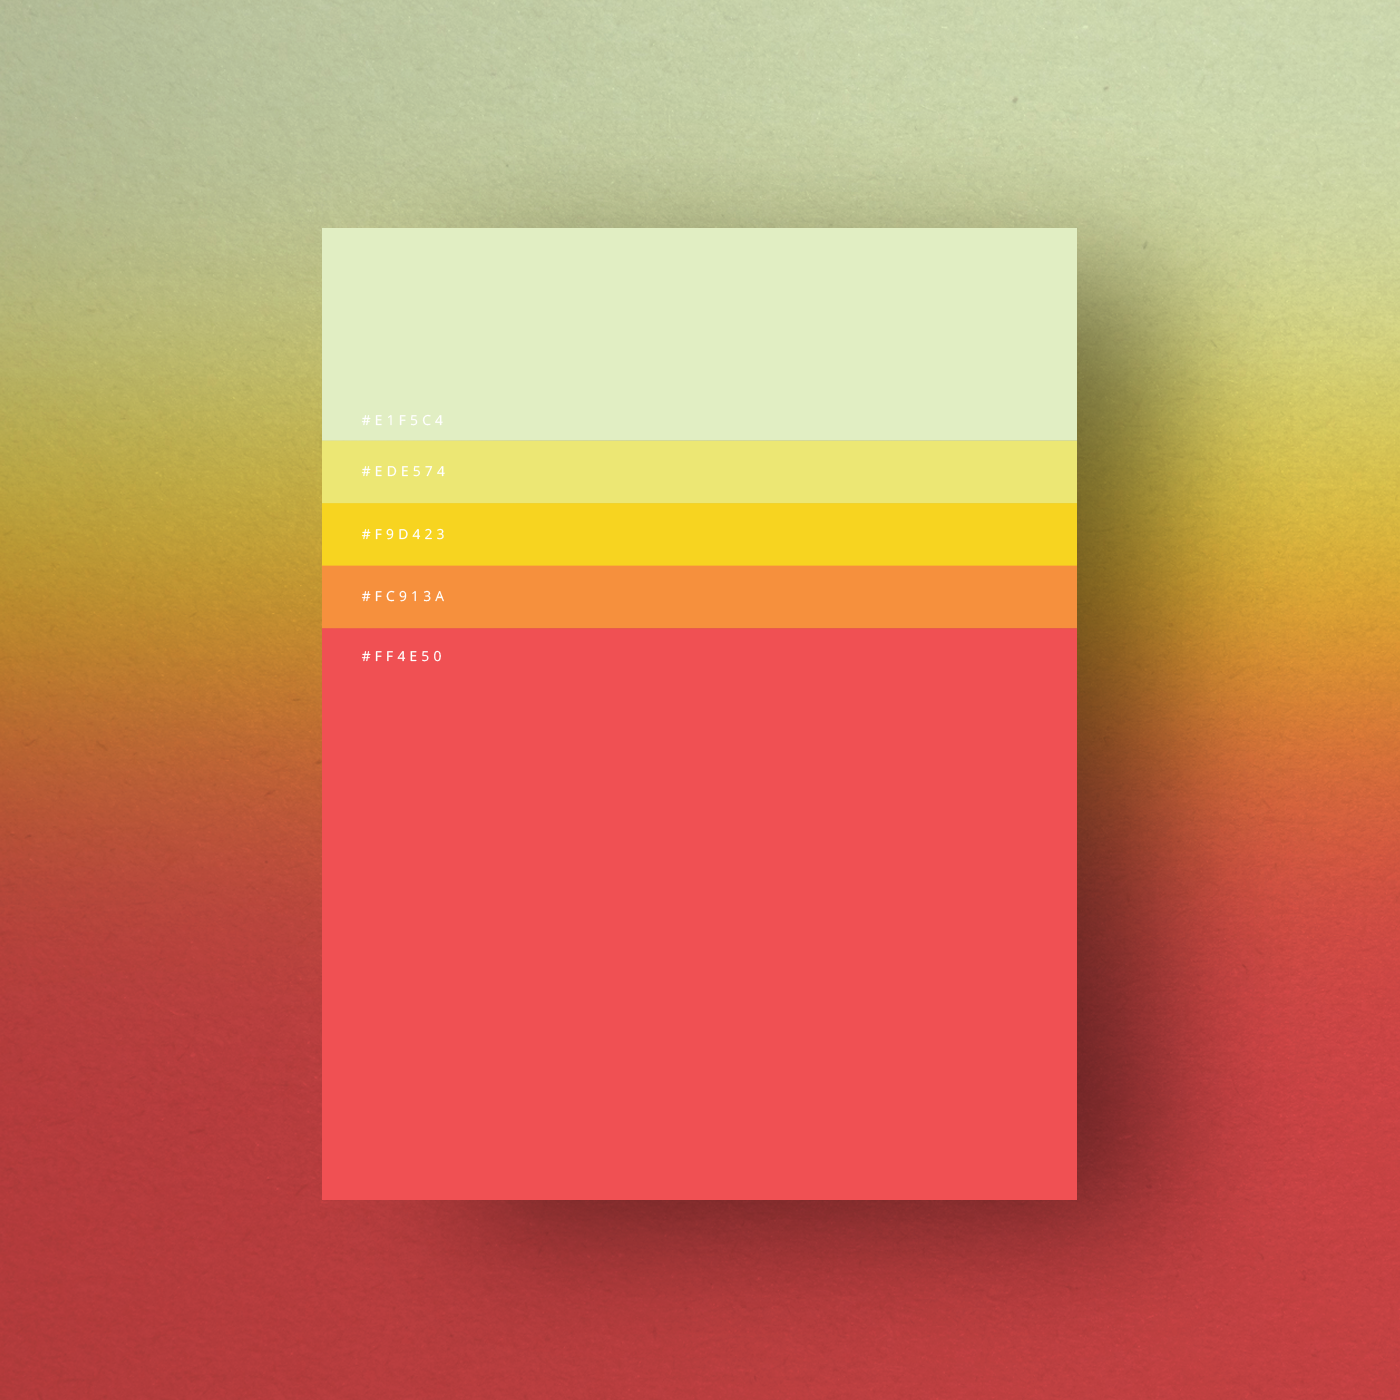 Colors: 8 Beautiful Color Palettes For Your Next Design Project